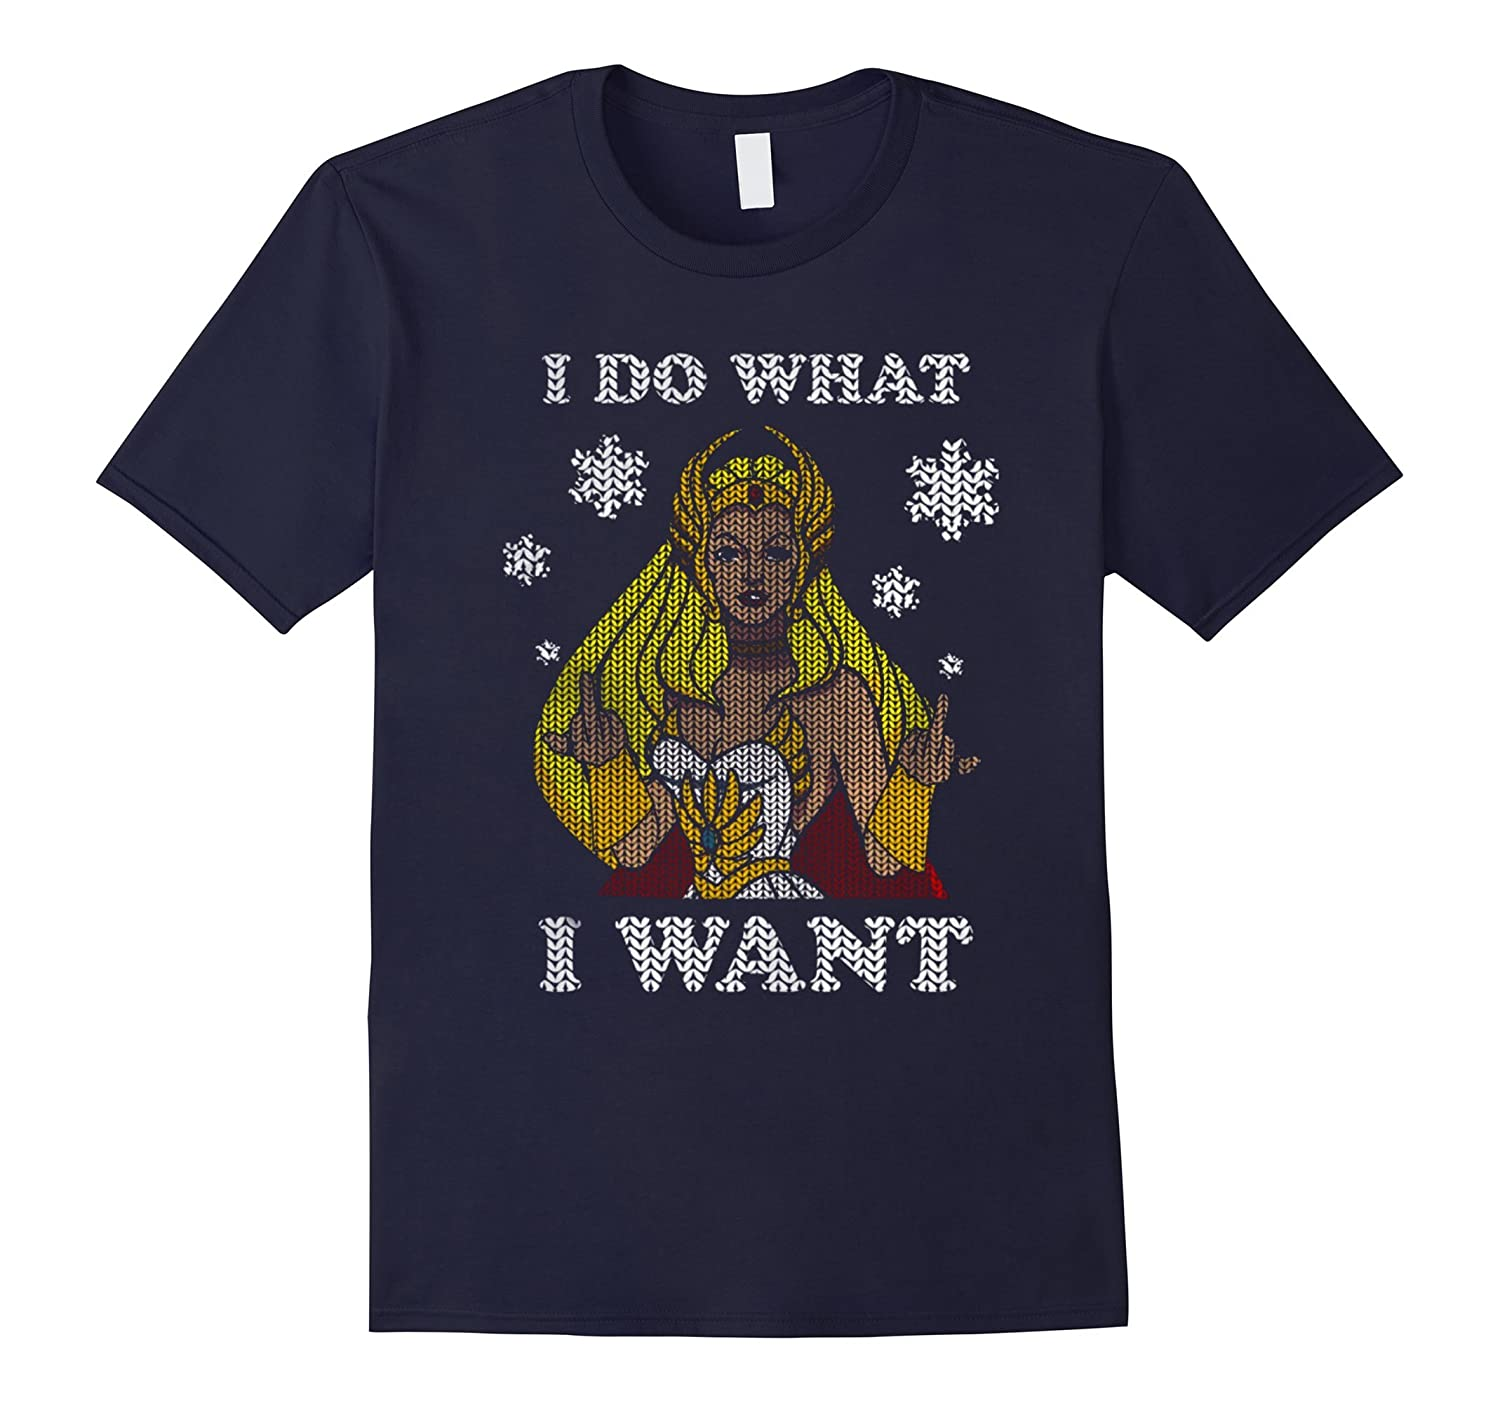 I Do What I Want T shirt - SHERA FANS